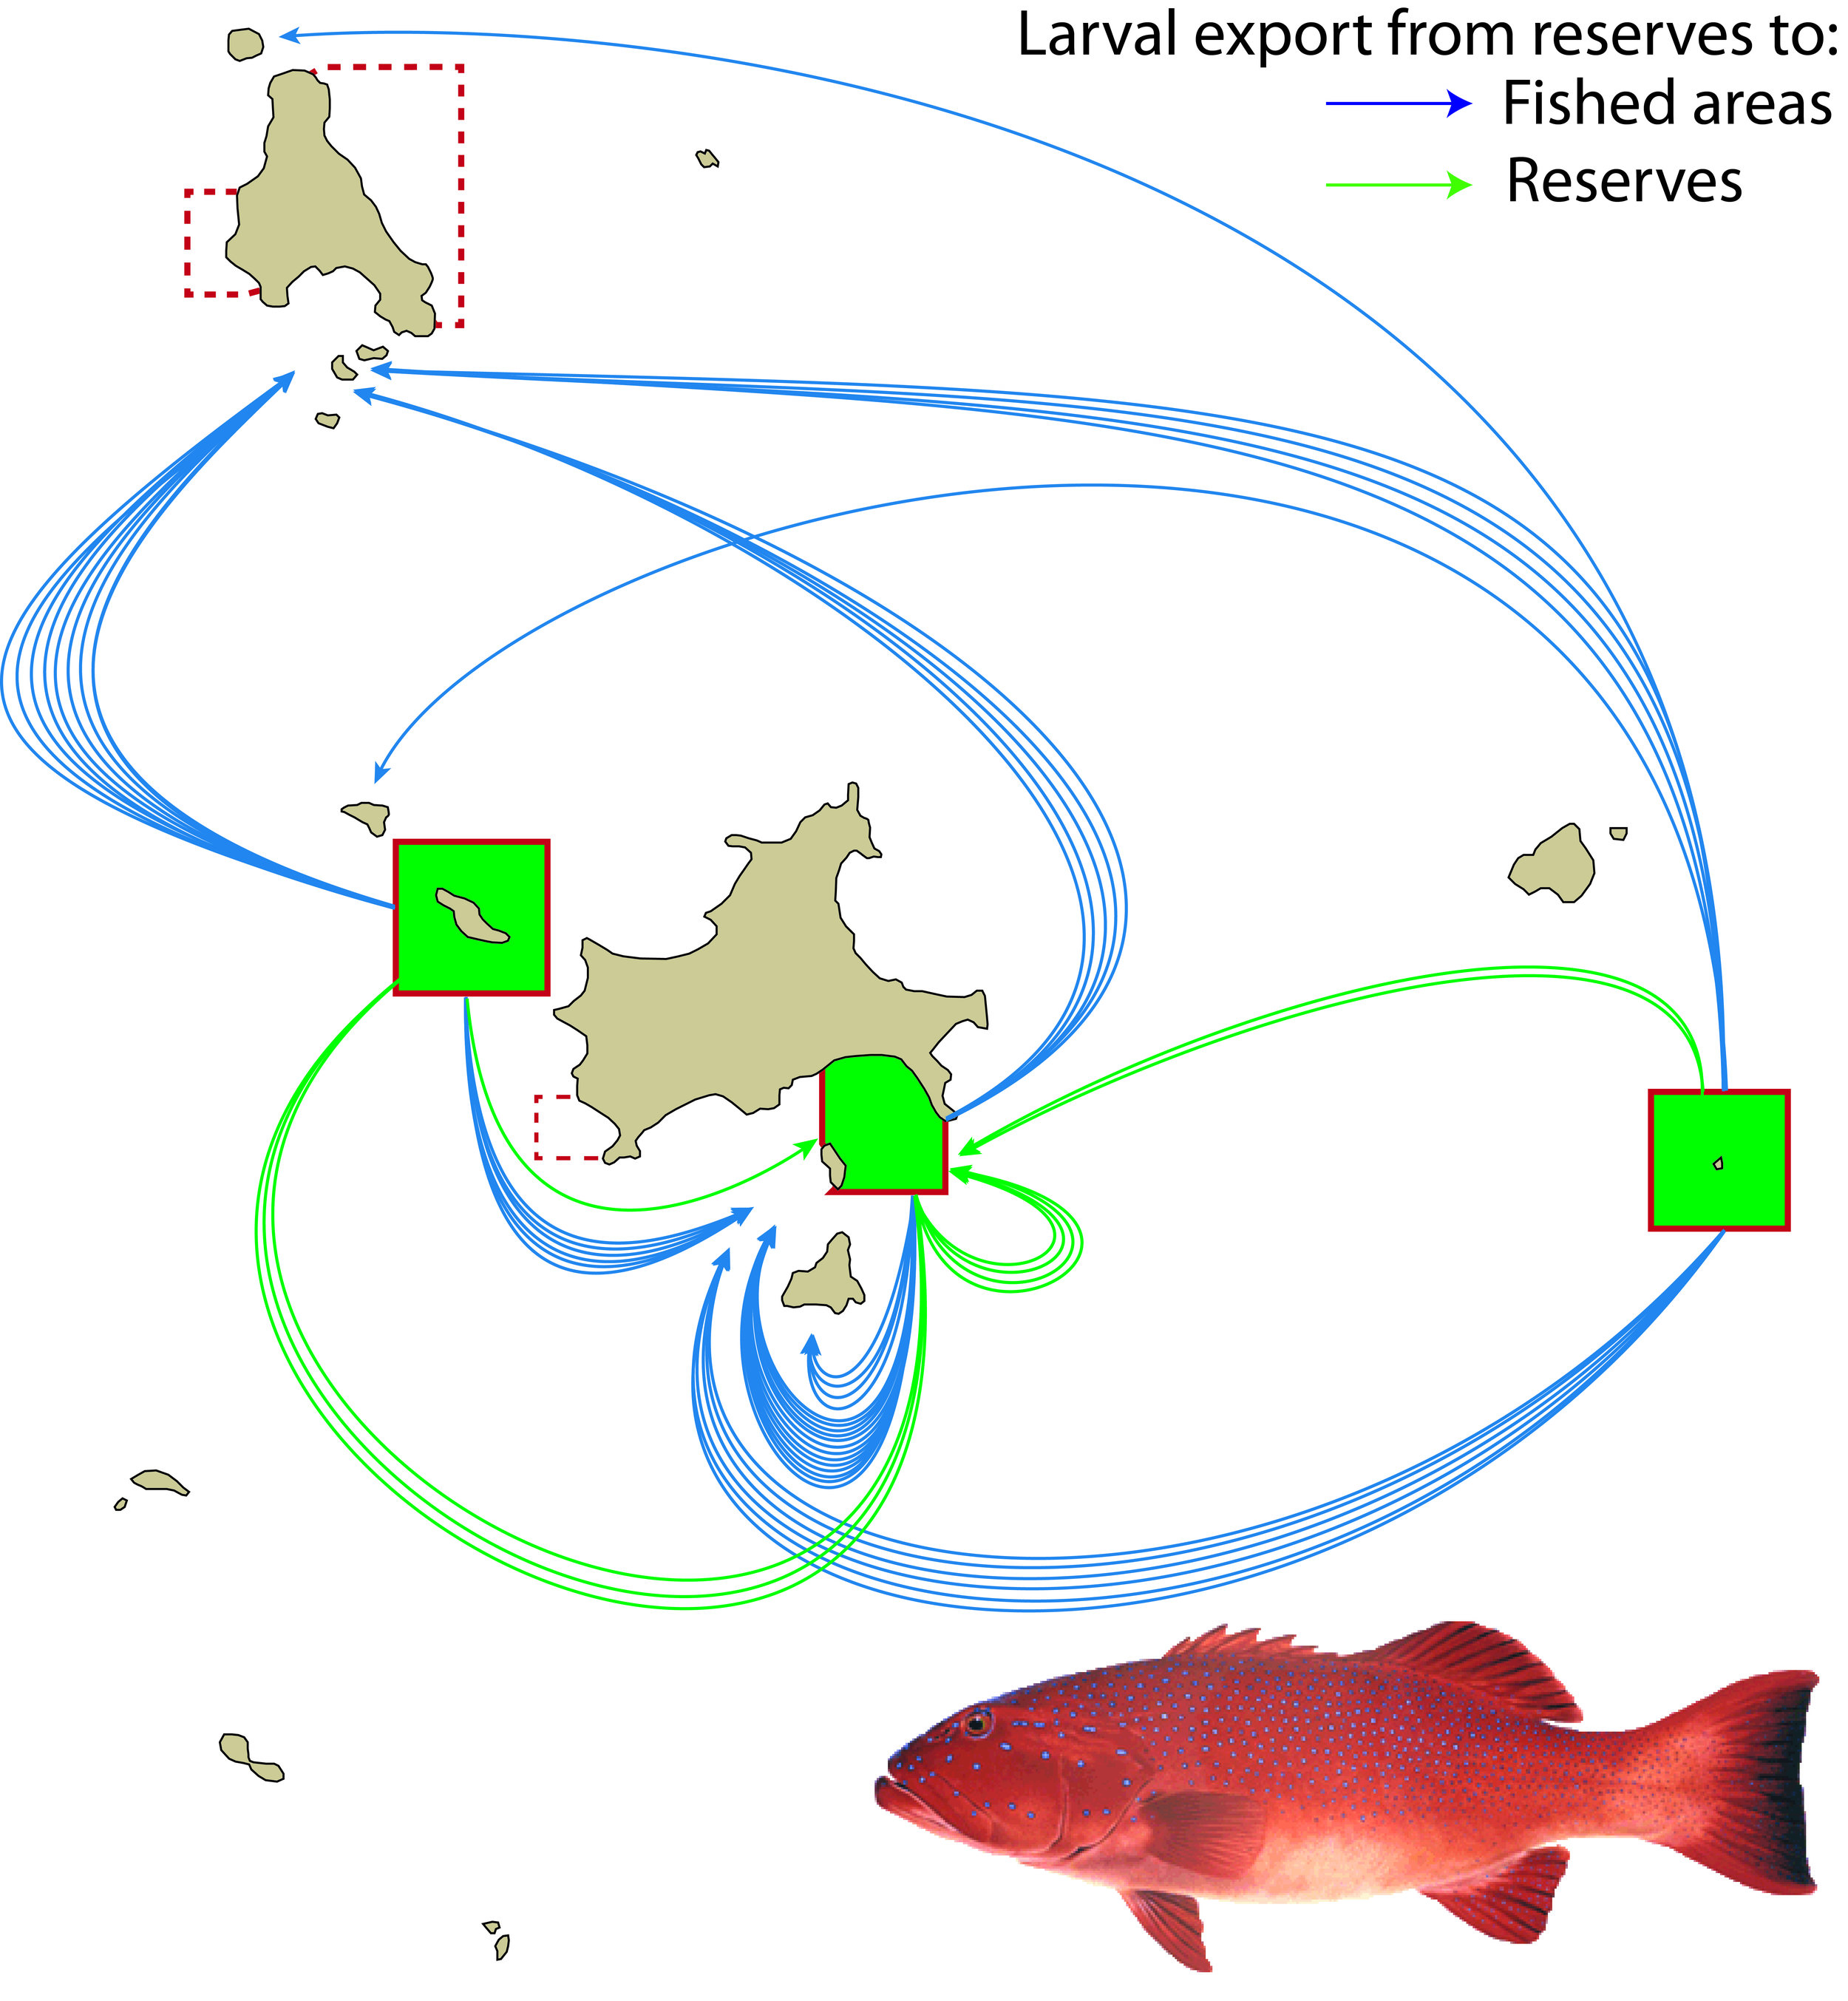 Realized dispersal patterns of juvenile coral trout from a network of marine reserves   Using DNA fingerprinting technology, we tracked the dispersal pathways of baby coral trout and stripey snappers from the marine reserves (dark green) in the Keppel island group where they were spawned. We found that a very large proportion of baby fish settled on reefs in areas that are open to fishing, up to 30 kilometres from the place they were spawned. Most of the baby fish settled within 1-5kms of reserves but a significant proportion dispersed 10 kilometres or more to find a new home. Other reserves in the island group are indicated by dashed lines.